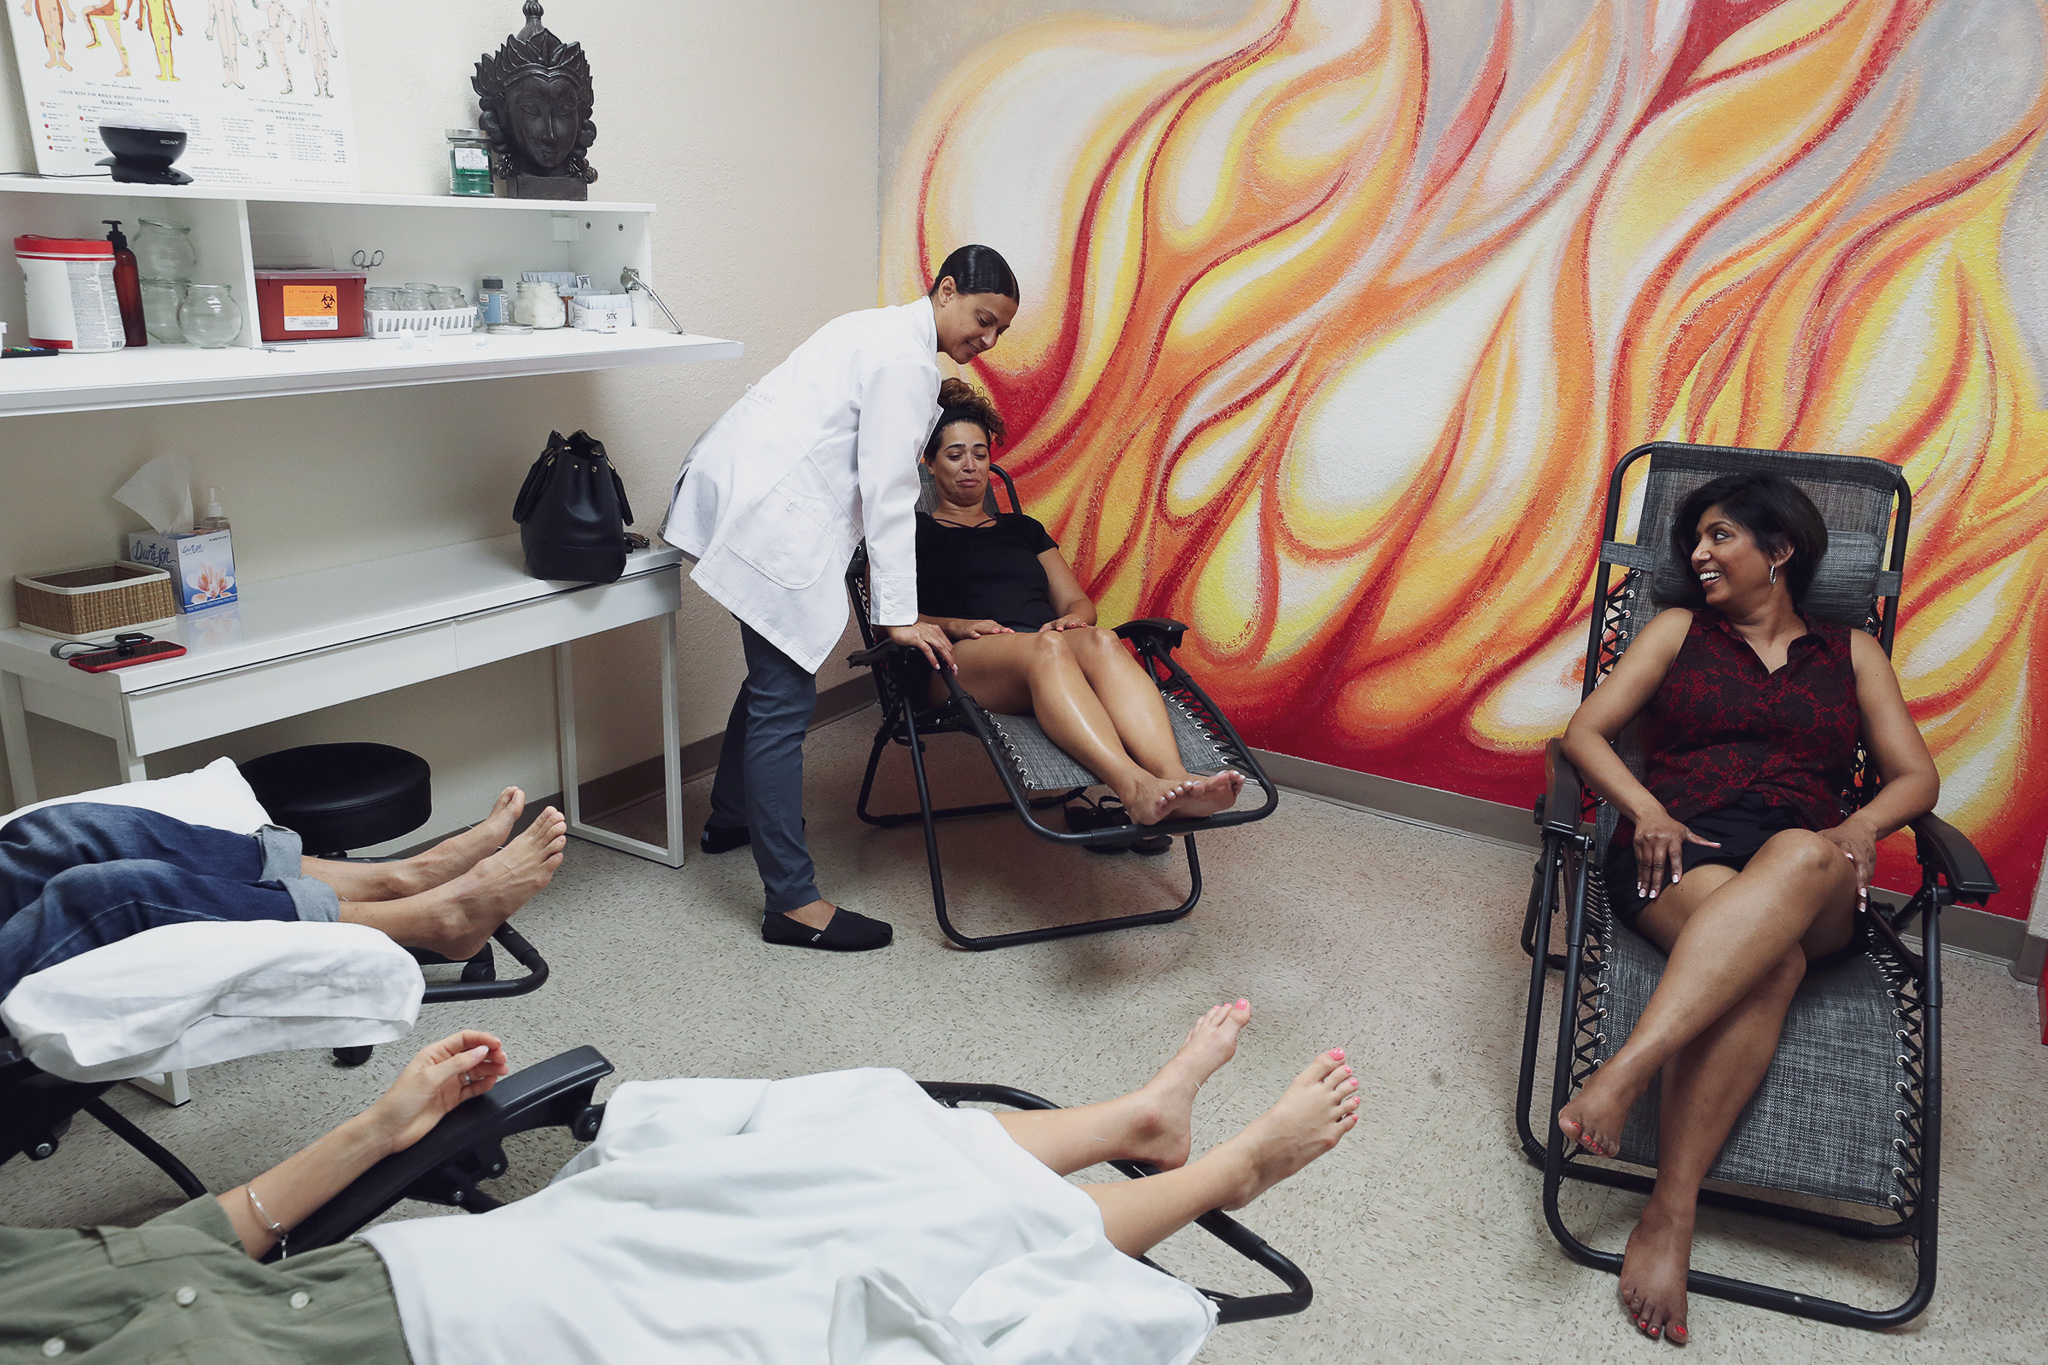 Community Acupuncture at Eastern Acupuncture and Wellness